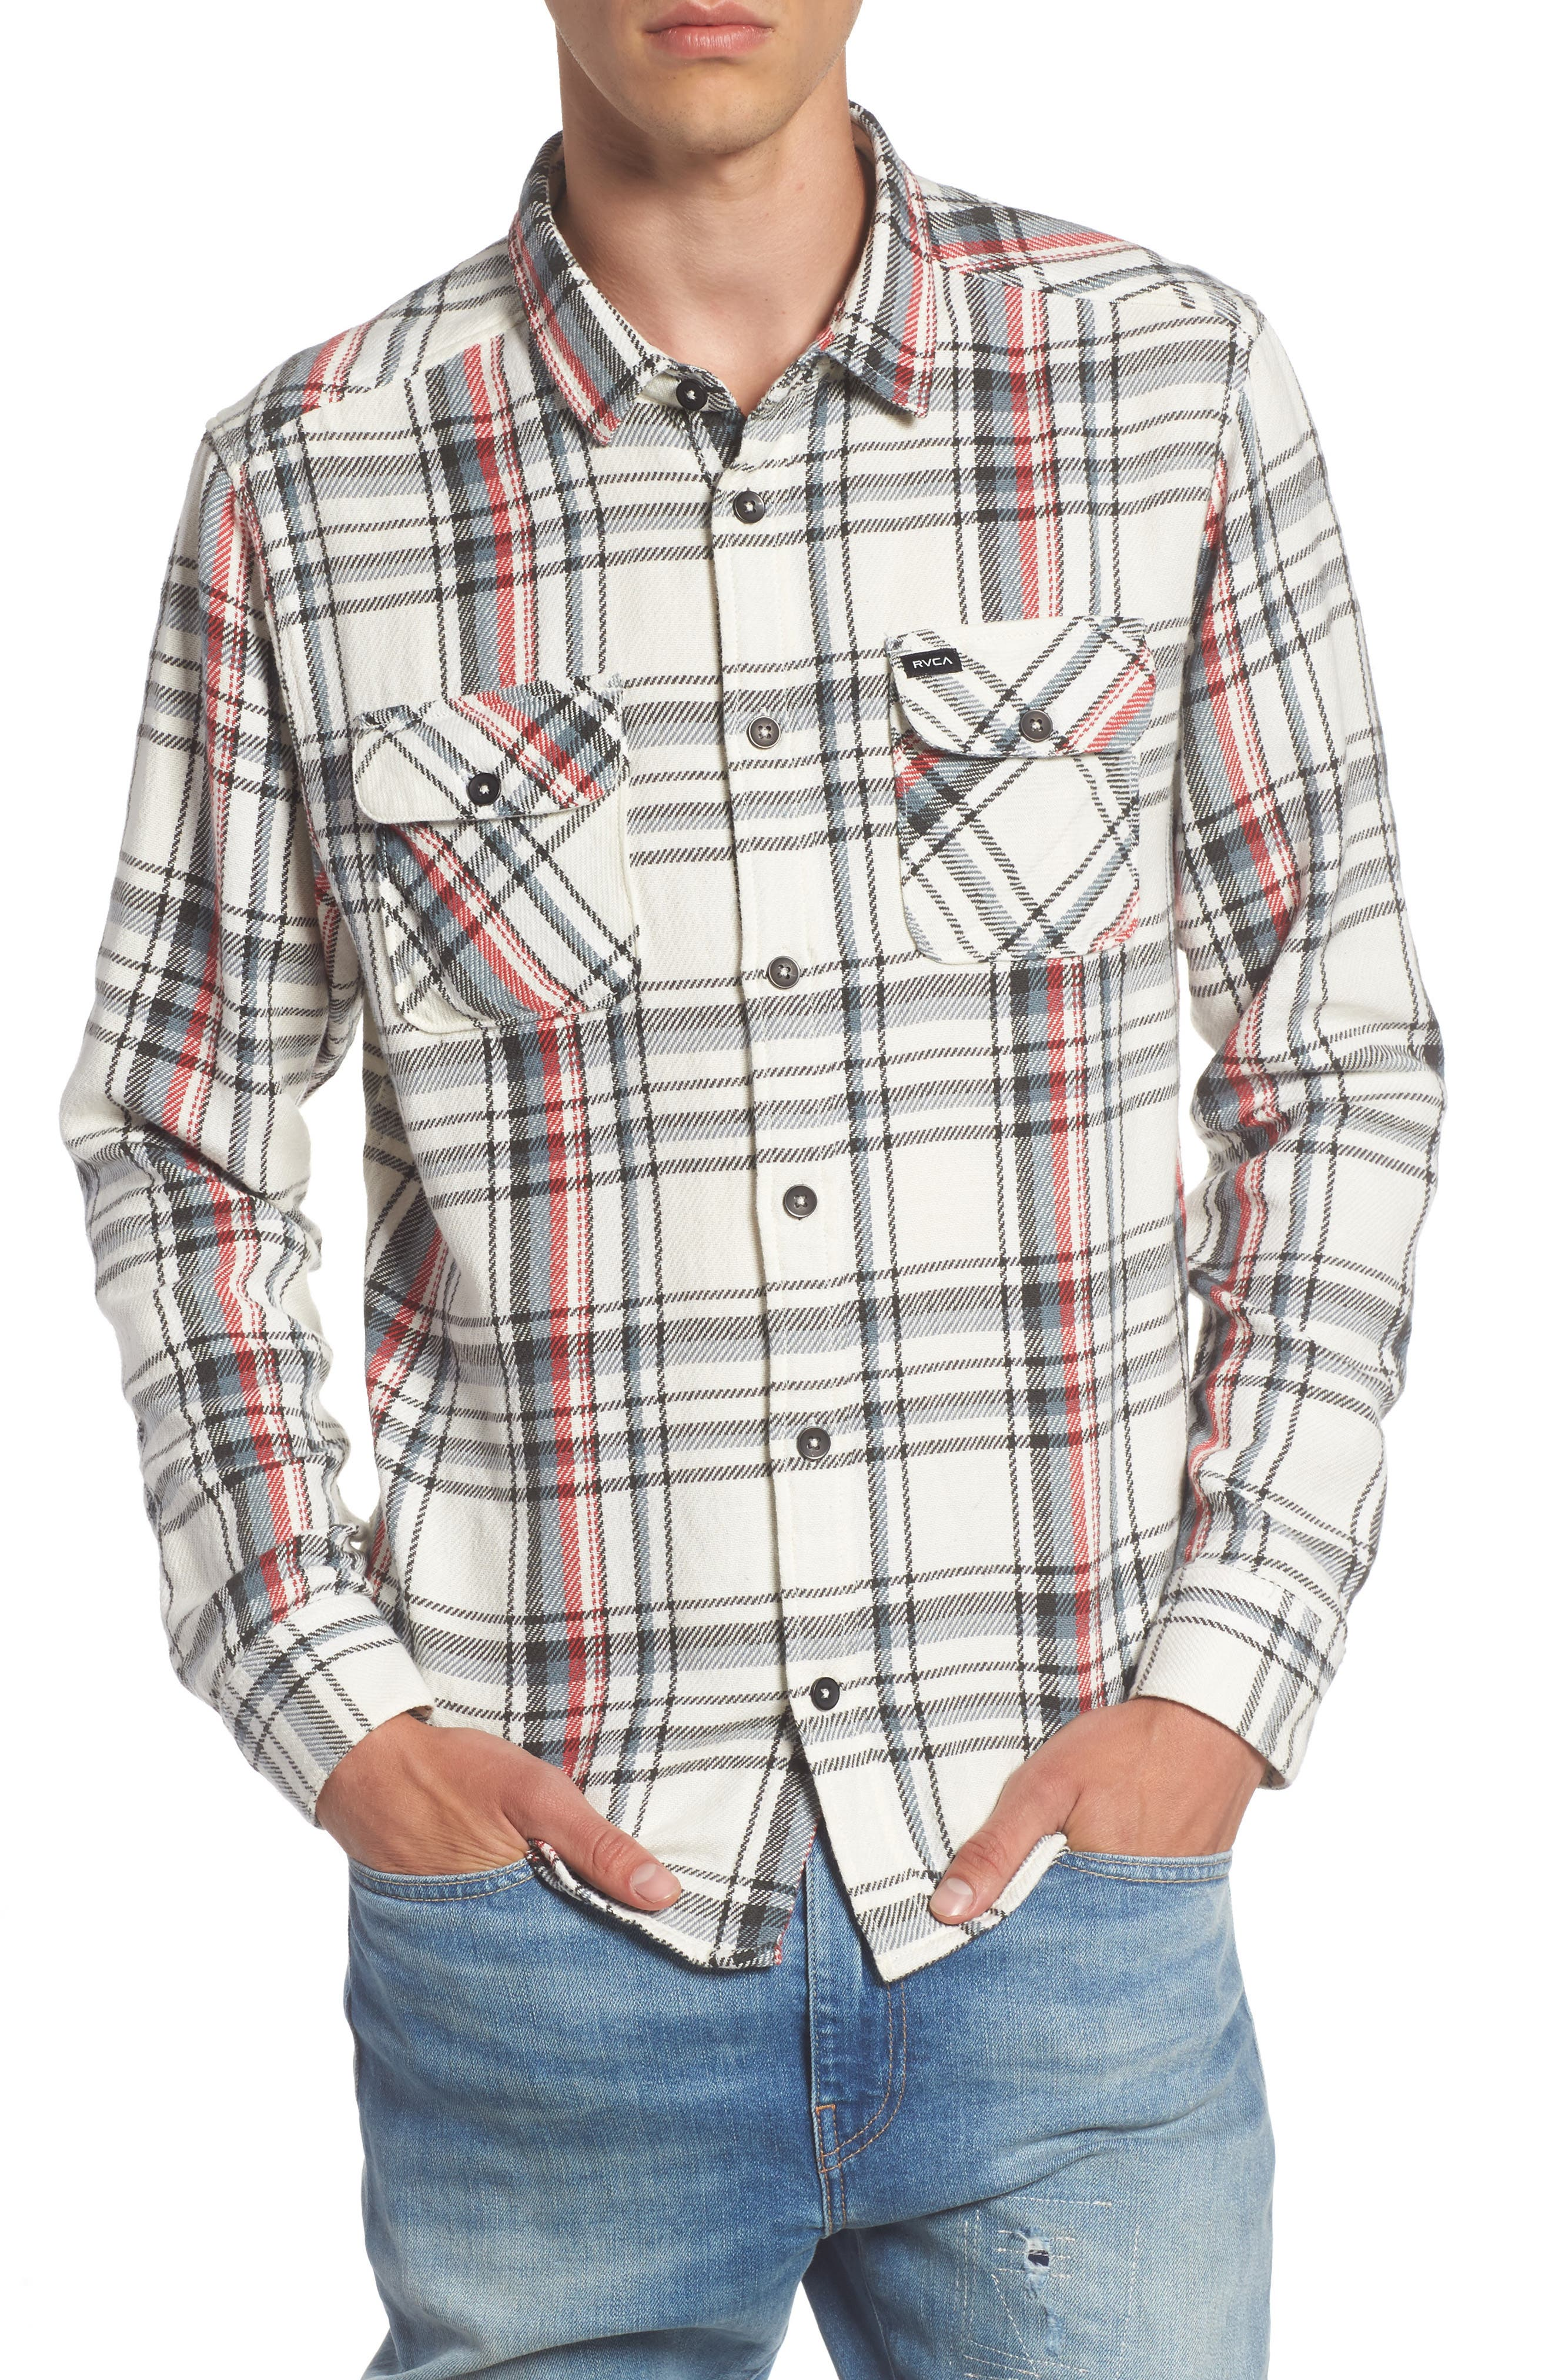 Alternate Image 1 Selected - RVCA Camino Plaid Flannel Shirt